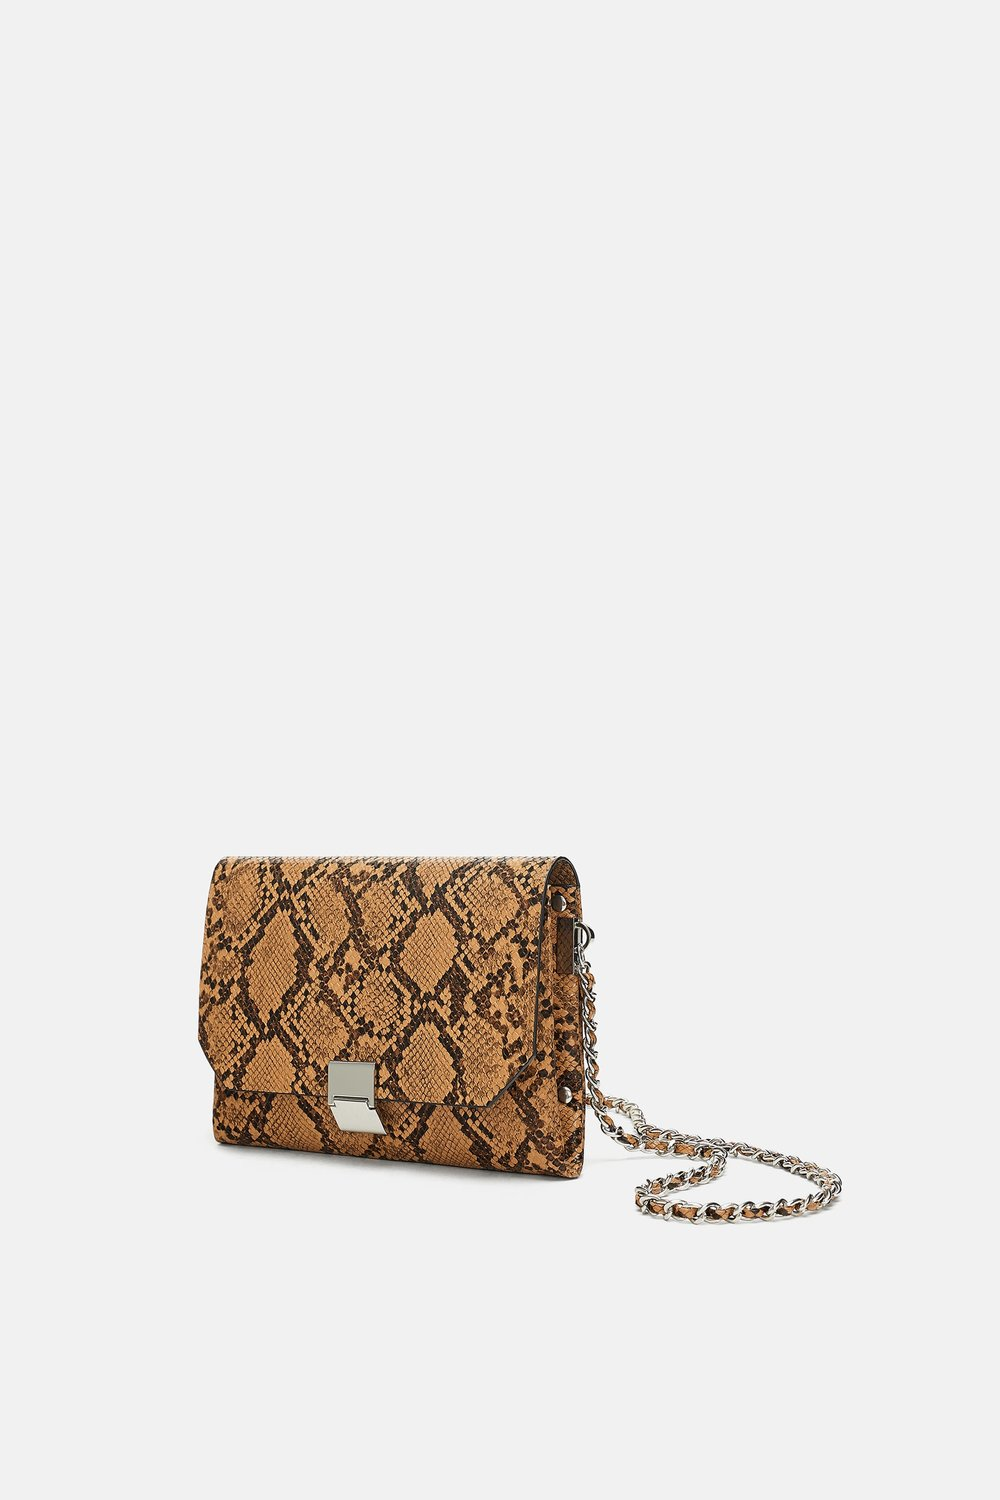 https://www.zara.com/ca/en/crossbody-bag-with-chain-p13350004.html?v1=7632503&v2=1132501